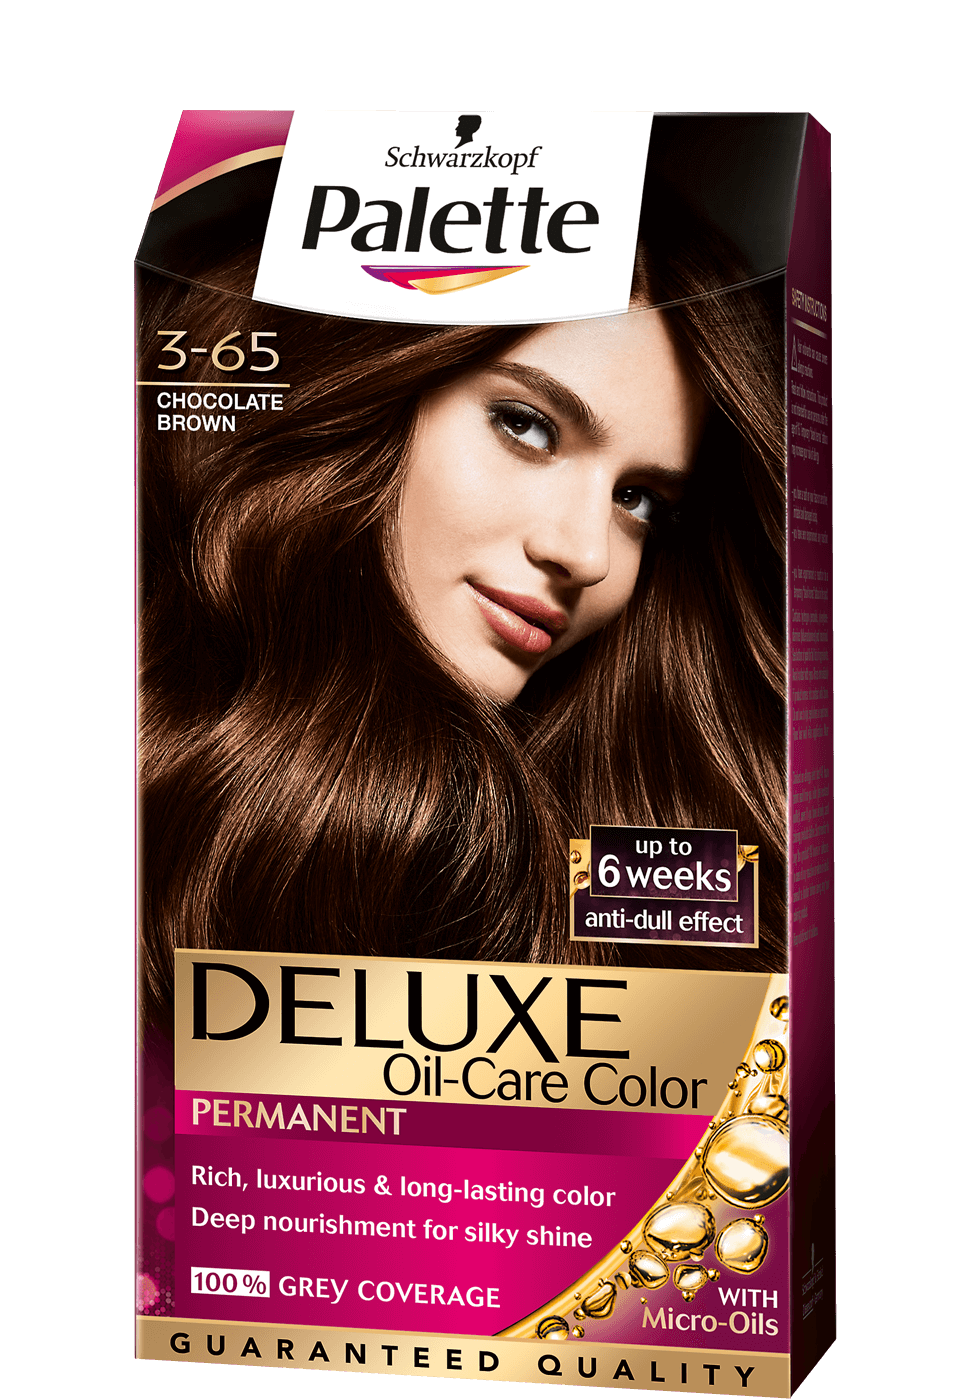 palette_com_deluxe_baseline_3-65_chocolate_brown_970x1400